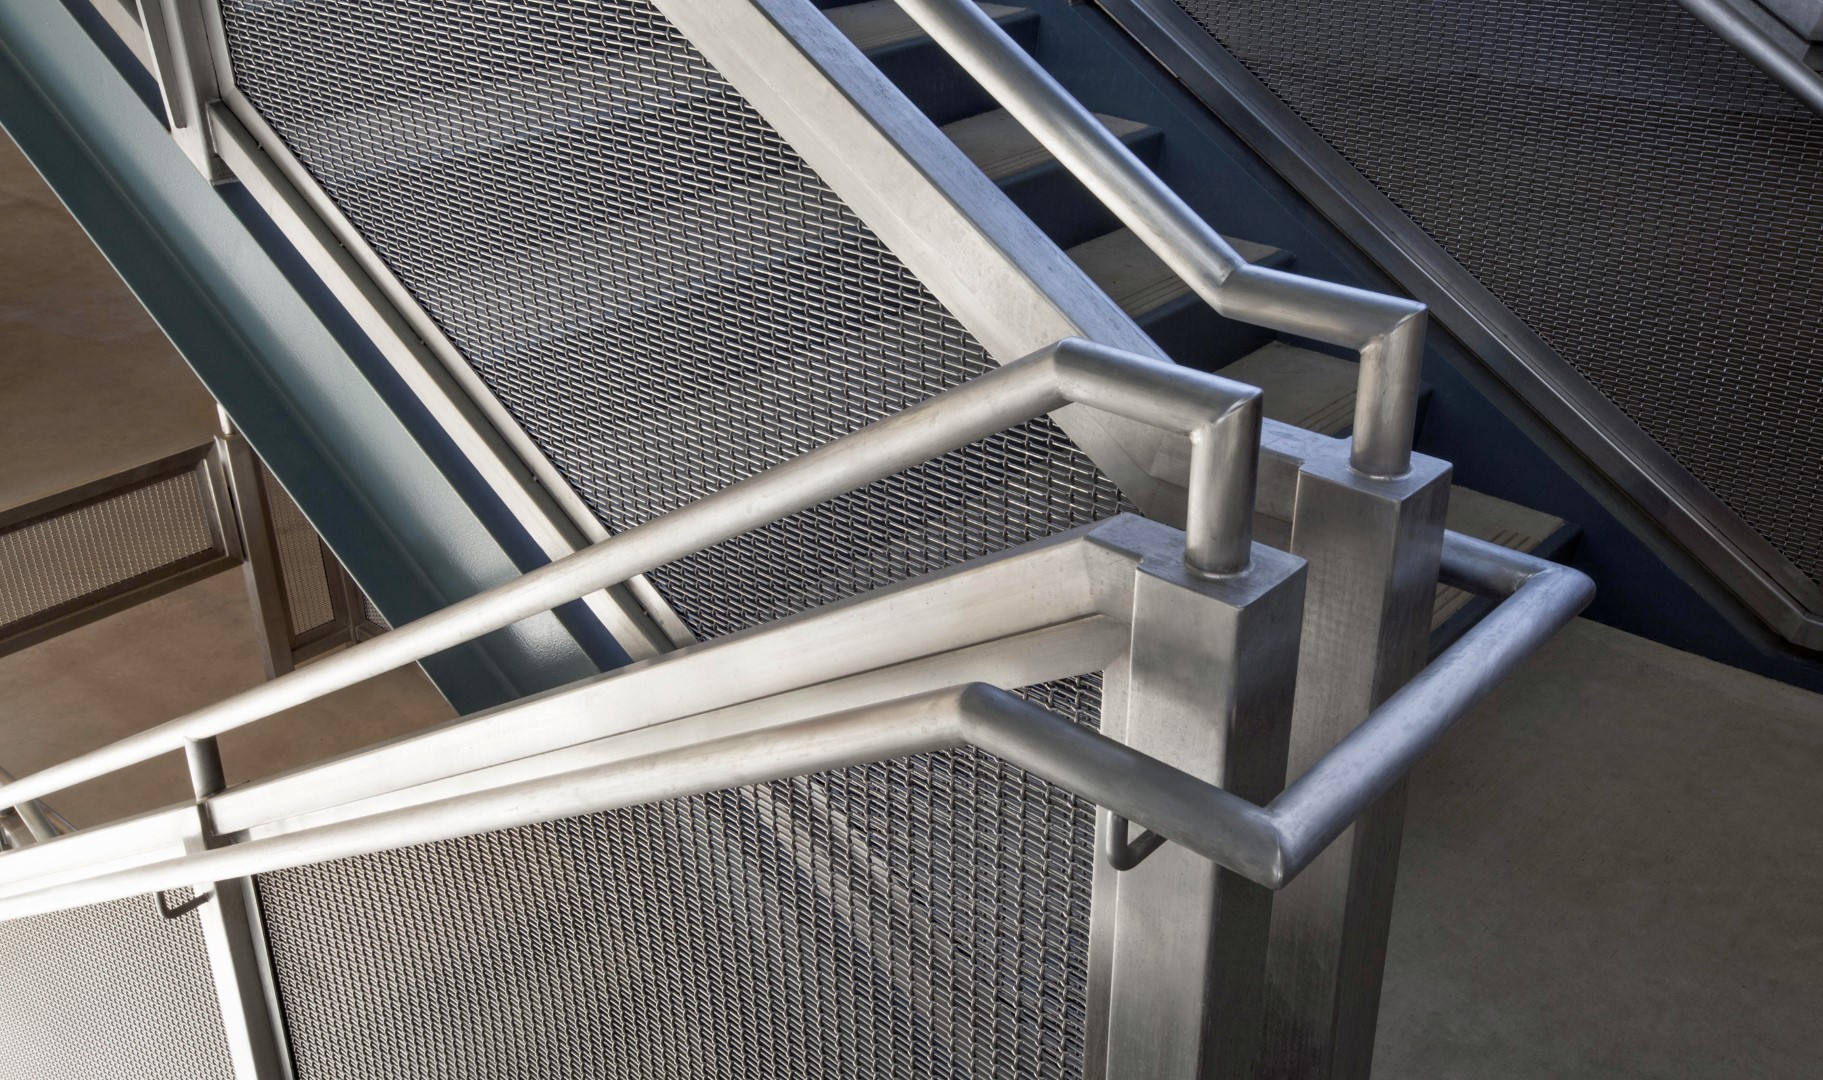 FPZ-10 stainless steel wire mesh railing at Camp Pendleton